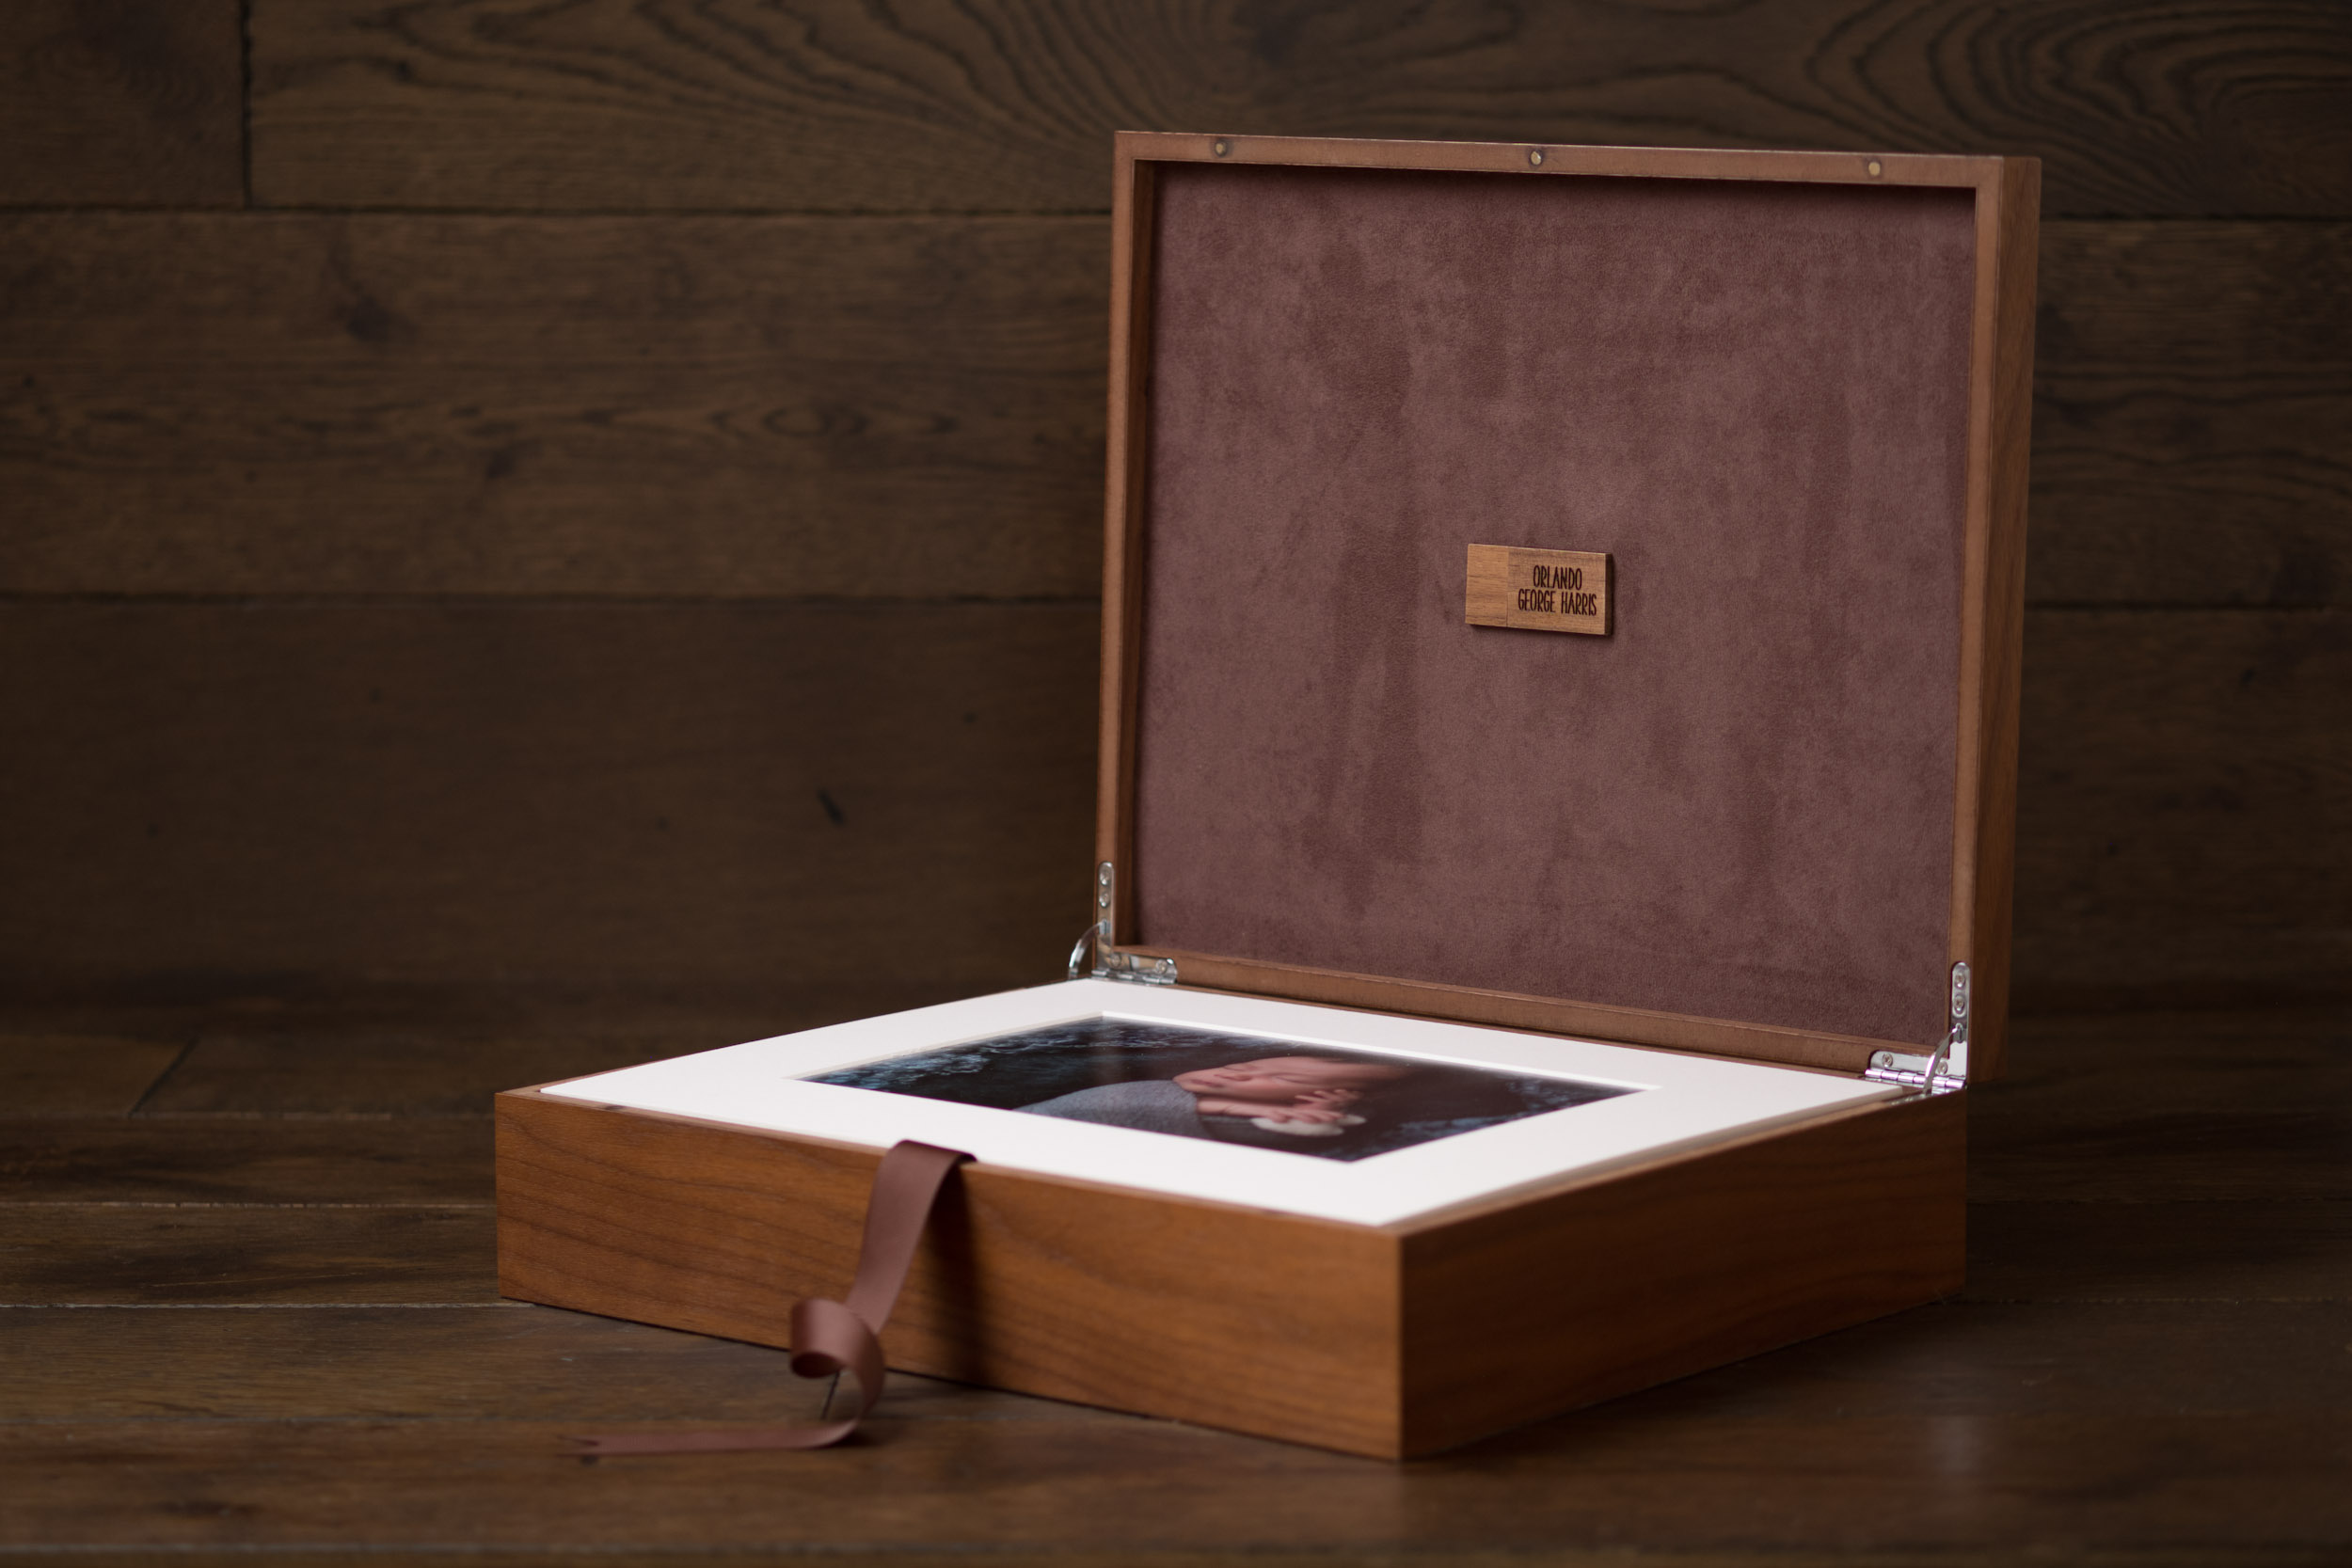 Newborn-Photography-Lincoln-Mounted-images-in-keepsake-hinged-wooden-box-007.jpg